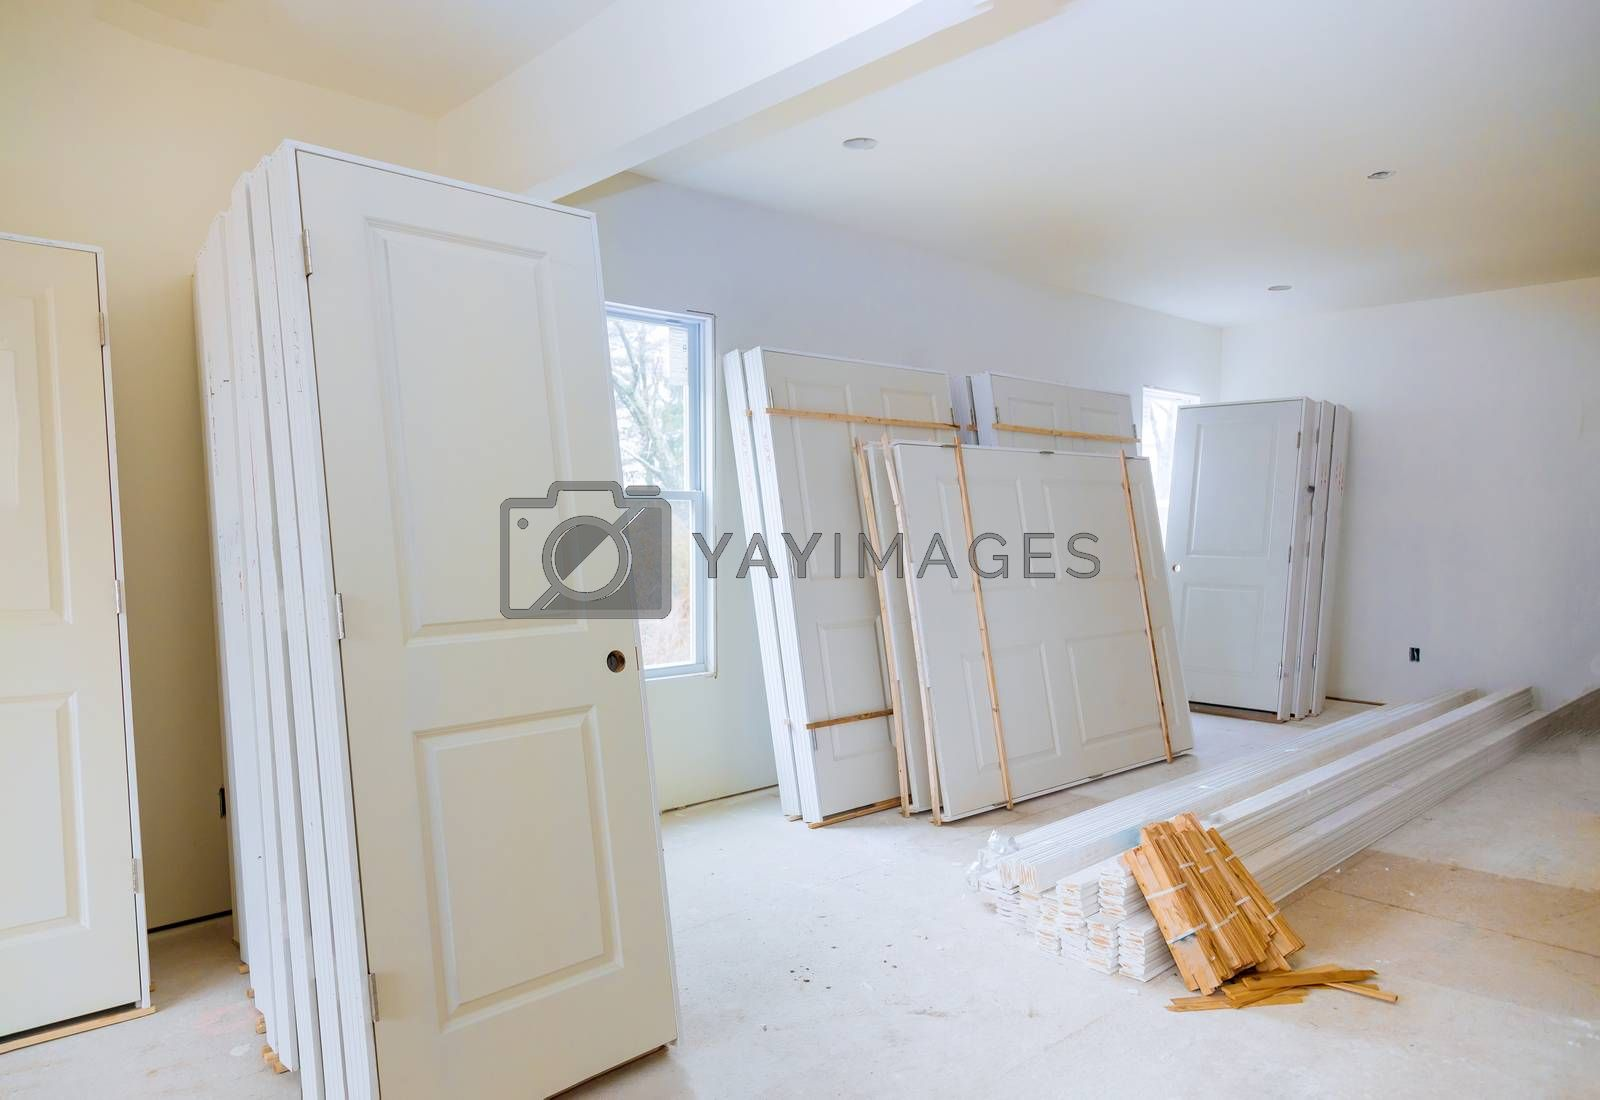 Construction of new house for the in a room waiting for installation interior doors